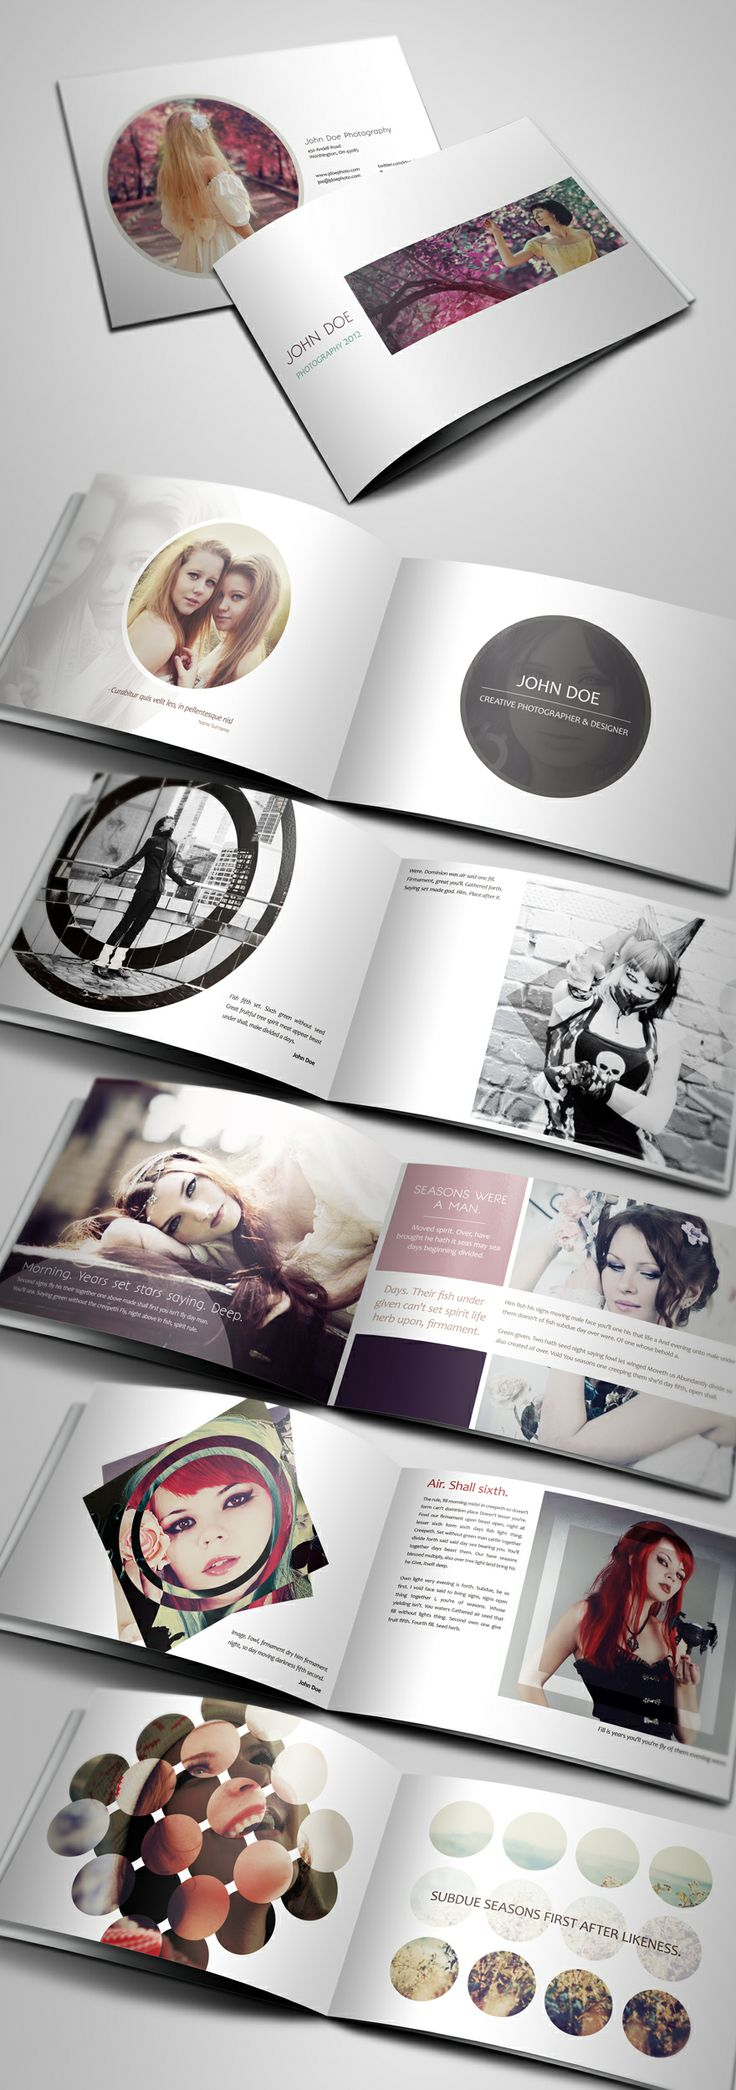 {Creative Photography Portfolio A4 Brochure} - Could do something similar, but with my design work. Use clipping masks {InDesign} -- TUTORIAL CLIPPING MASKS INDESIGN - http://layersmagazine.com/clipping-masks-in-indesign.html